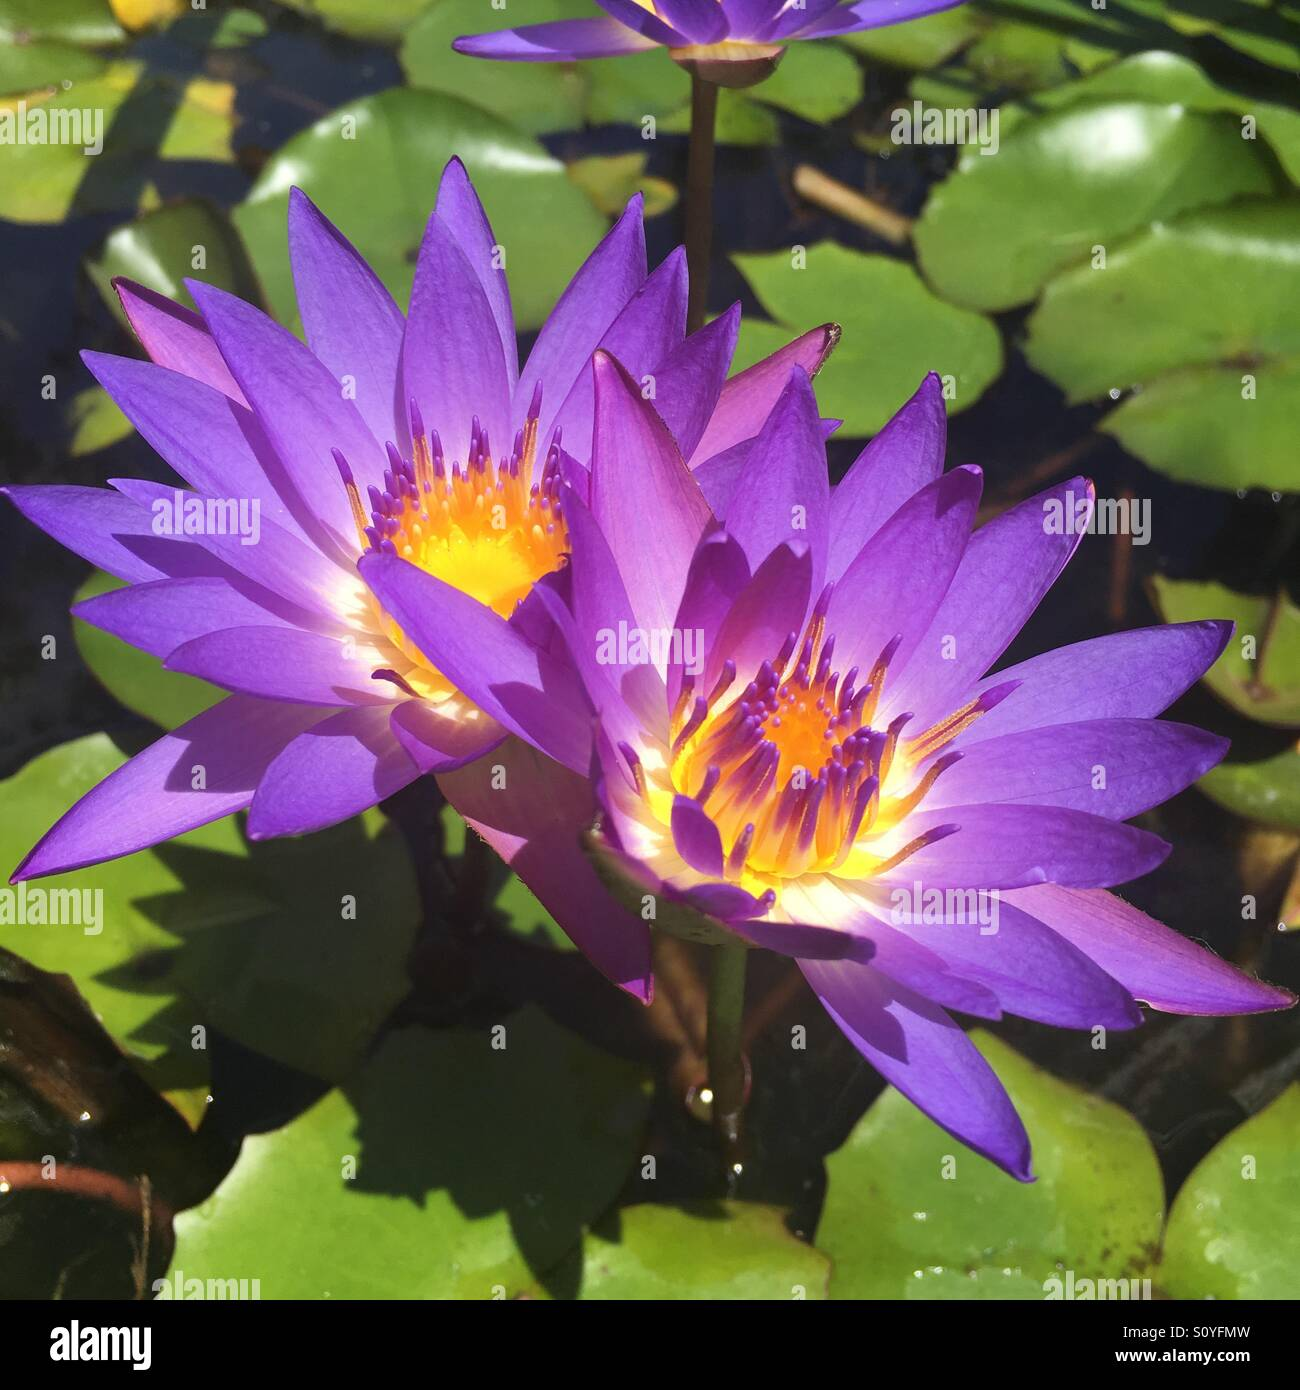 Lily pad flower stock photos lily pad flower stock images alamy purple lily pad flower izmirmasajfo